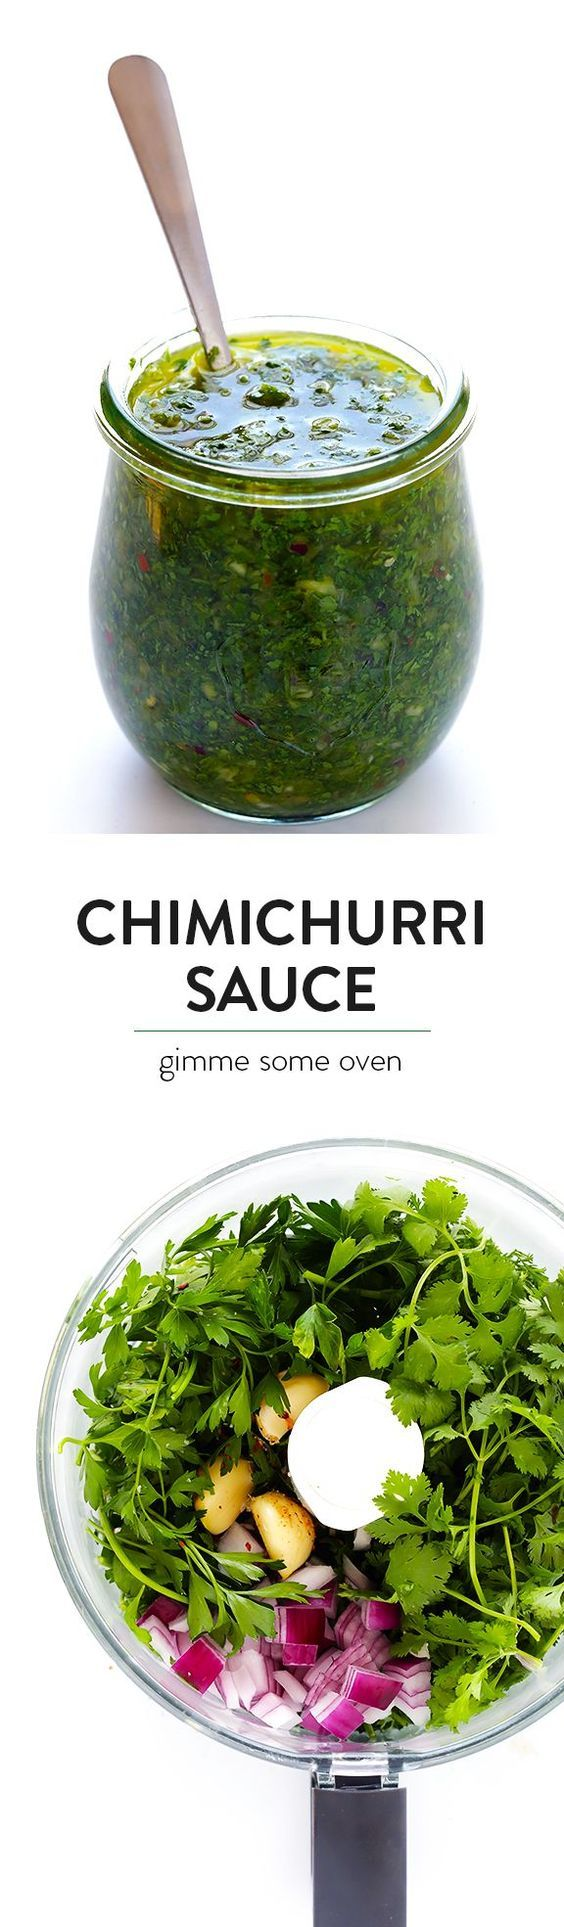 This homemade Chimichurri Sauce recipe is super easy to make in the food processor or blender, and it's full of easy, fresh, and delicious ingredients, and it's perfect for topping seafood, steak, veggies, or whatever sounds good.